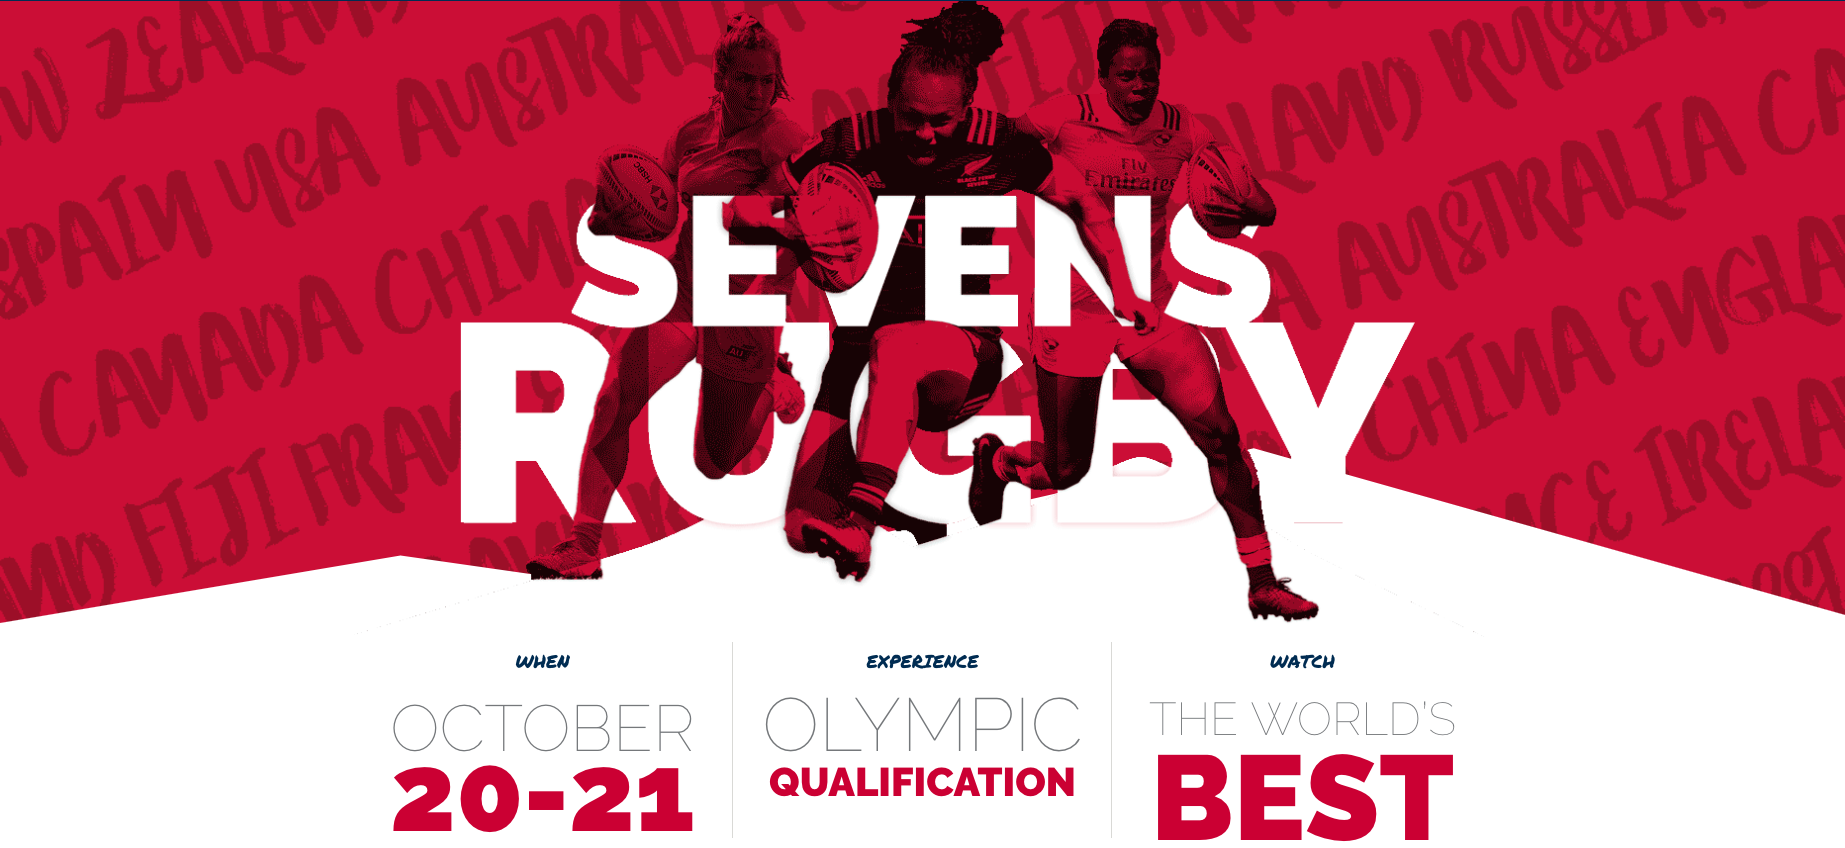 Tickets on sale now for  HSBC USA Women's Sevens in Glendale